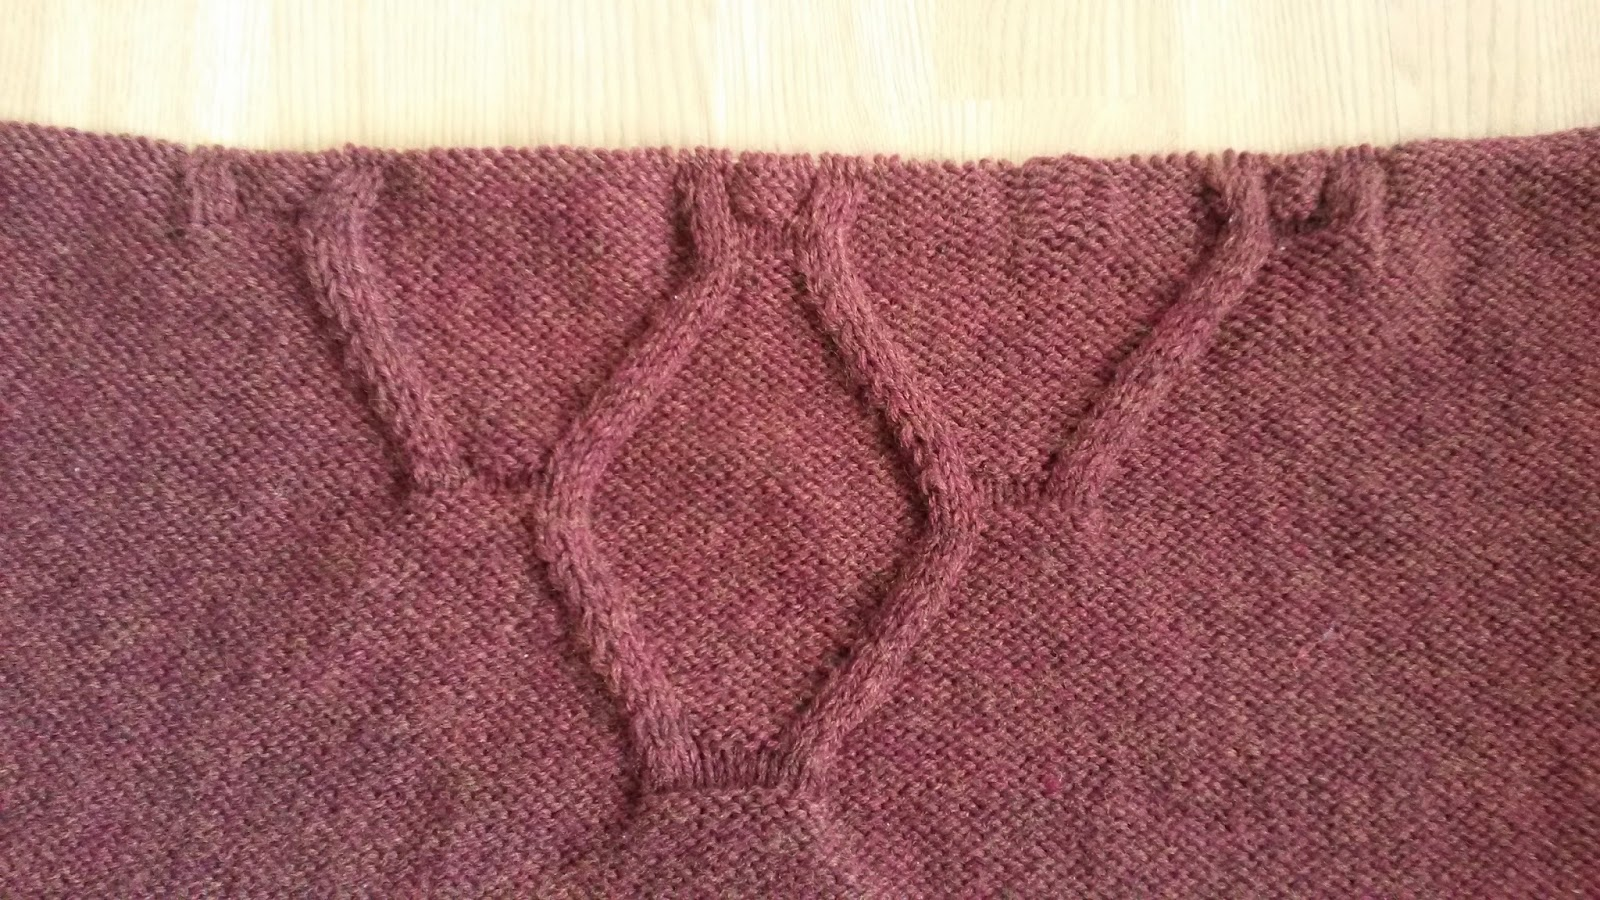 central motif of knitted ruana by Mrs U Makes